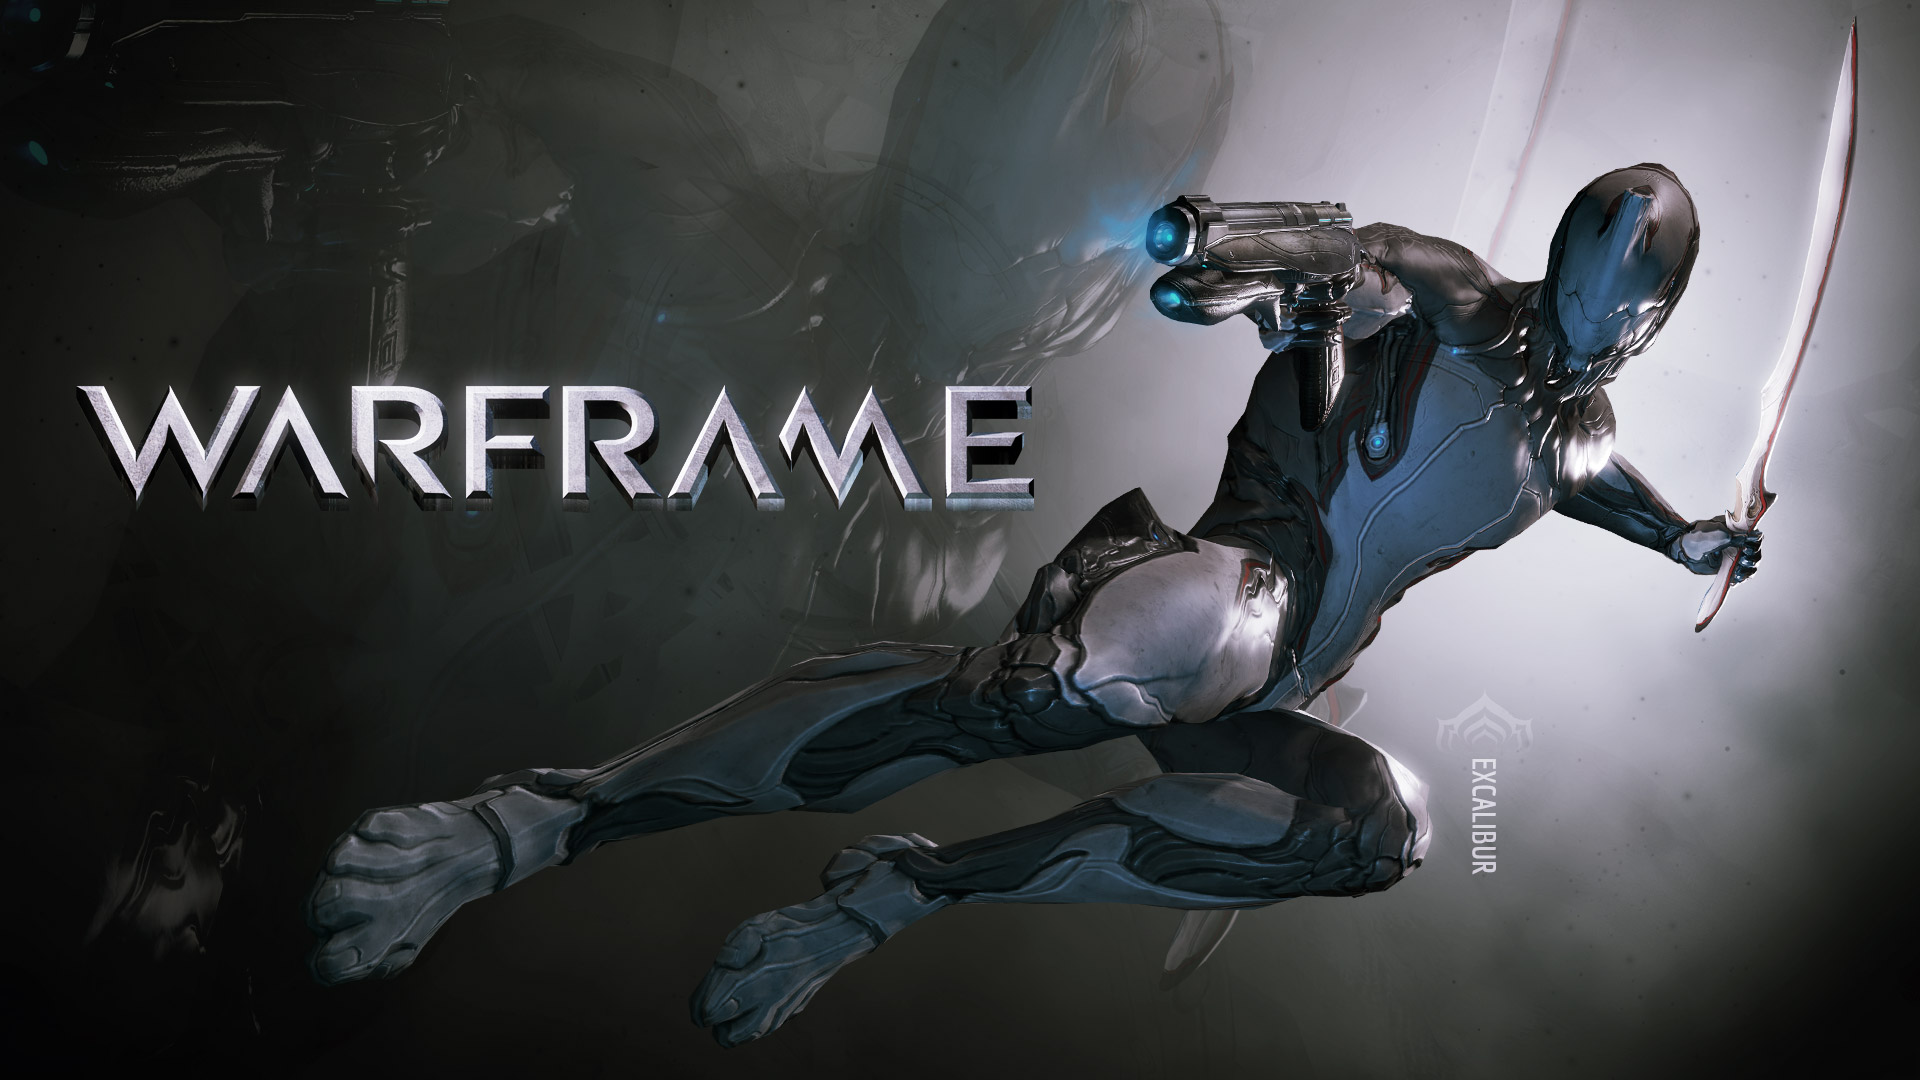 Excalibur. One of three Warframe choices presented to you when you start the game